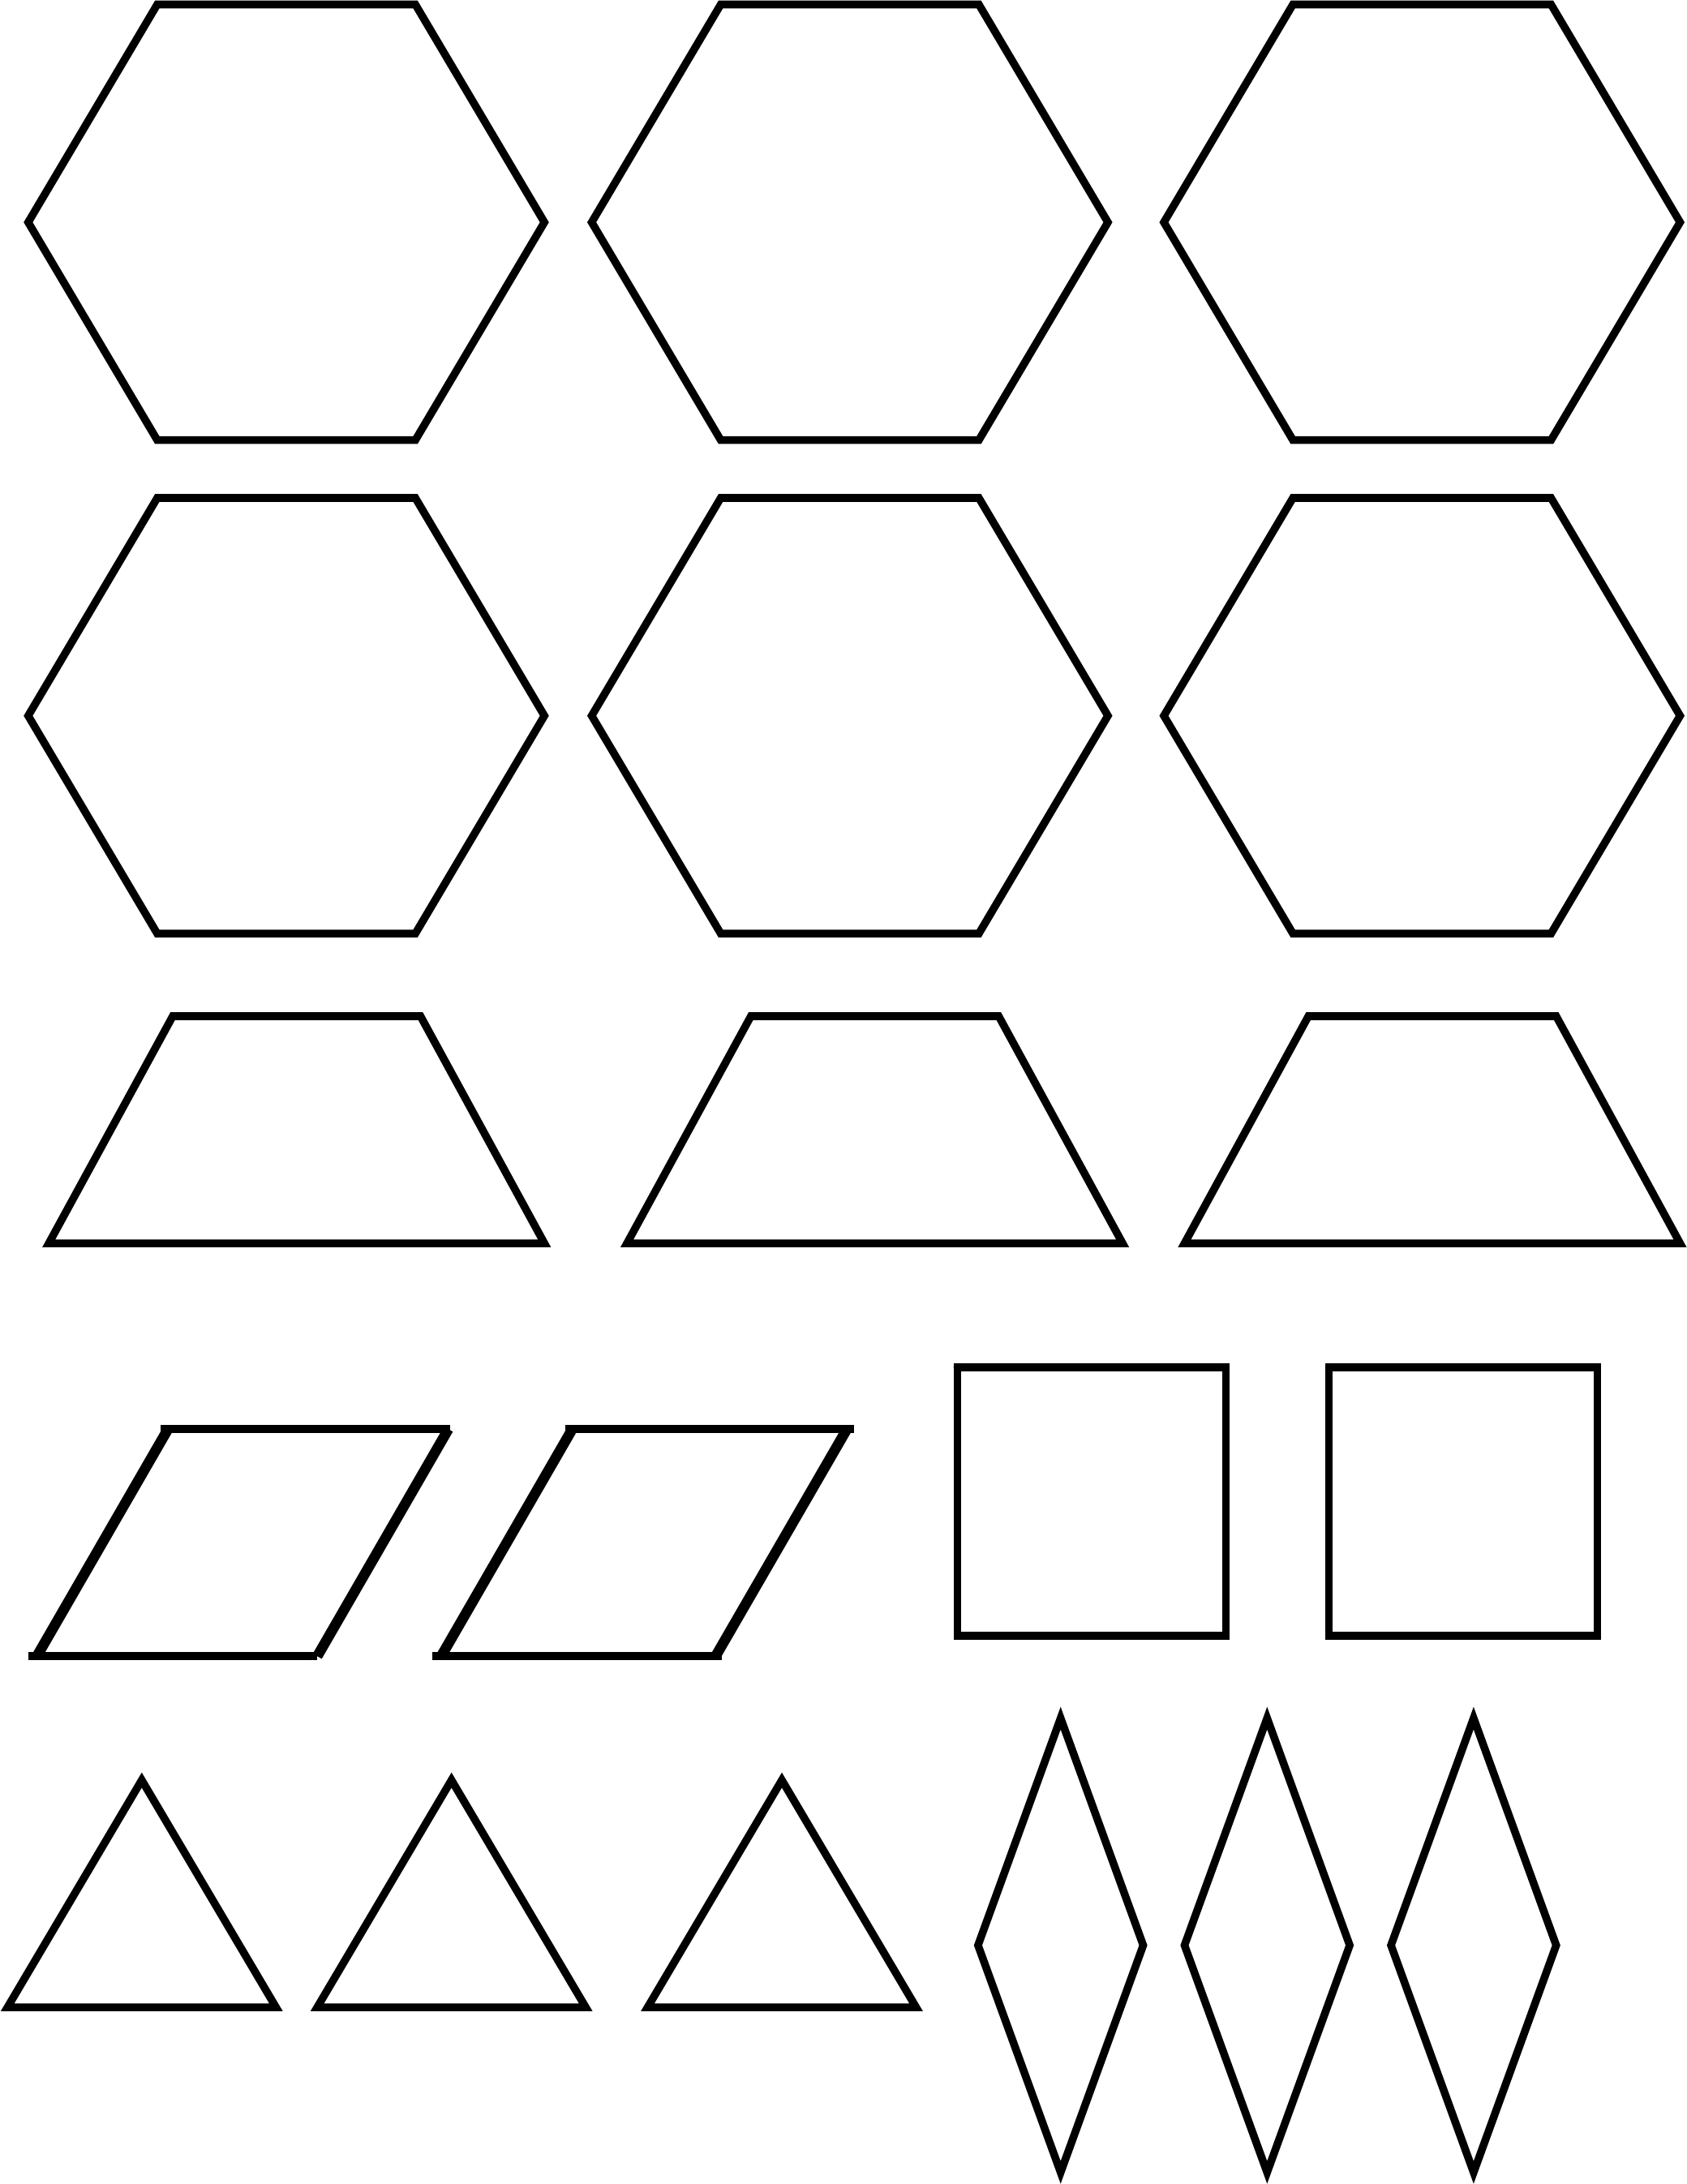 Pattern Block Template Sample Free Download Within Blank Pattern Block Templates